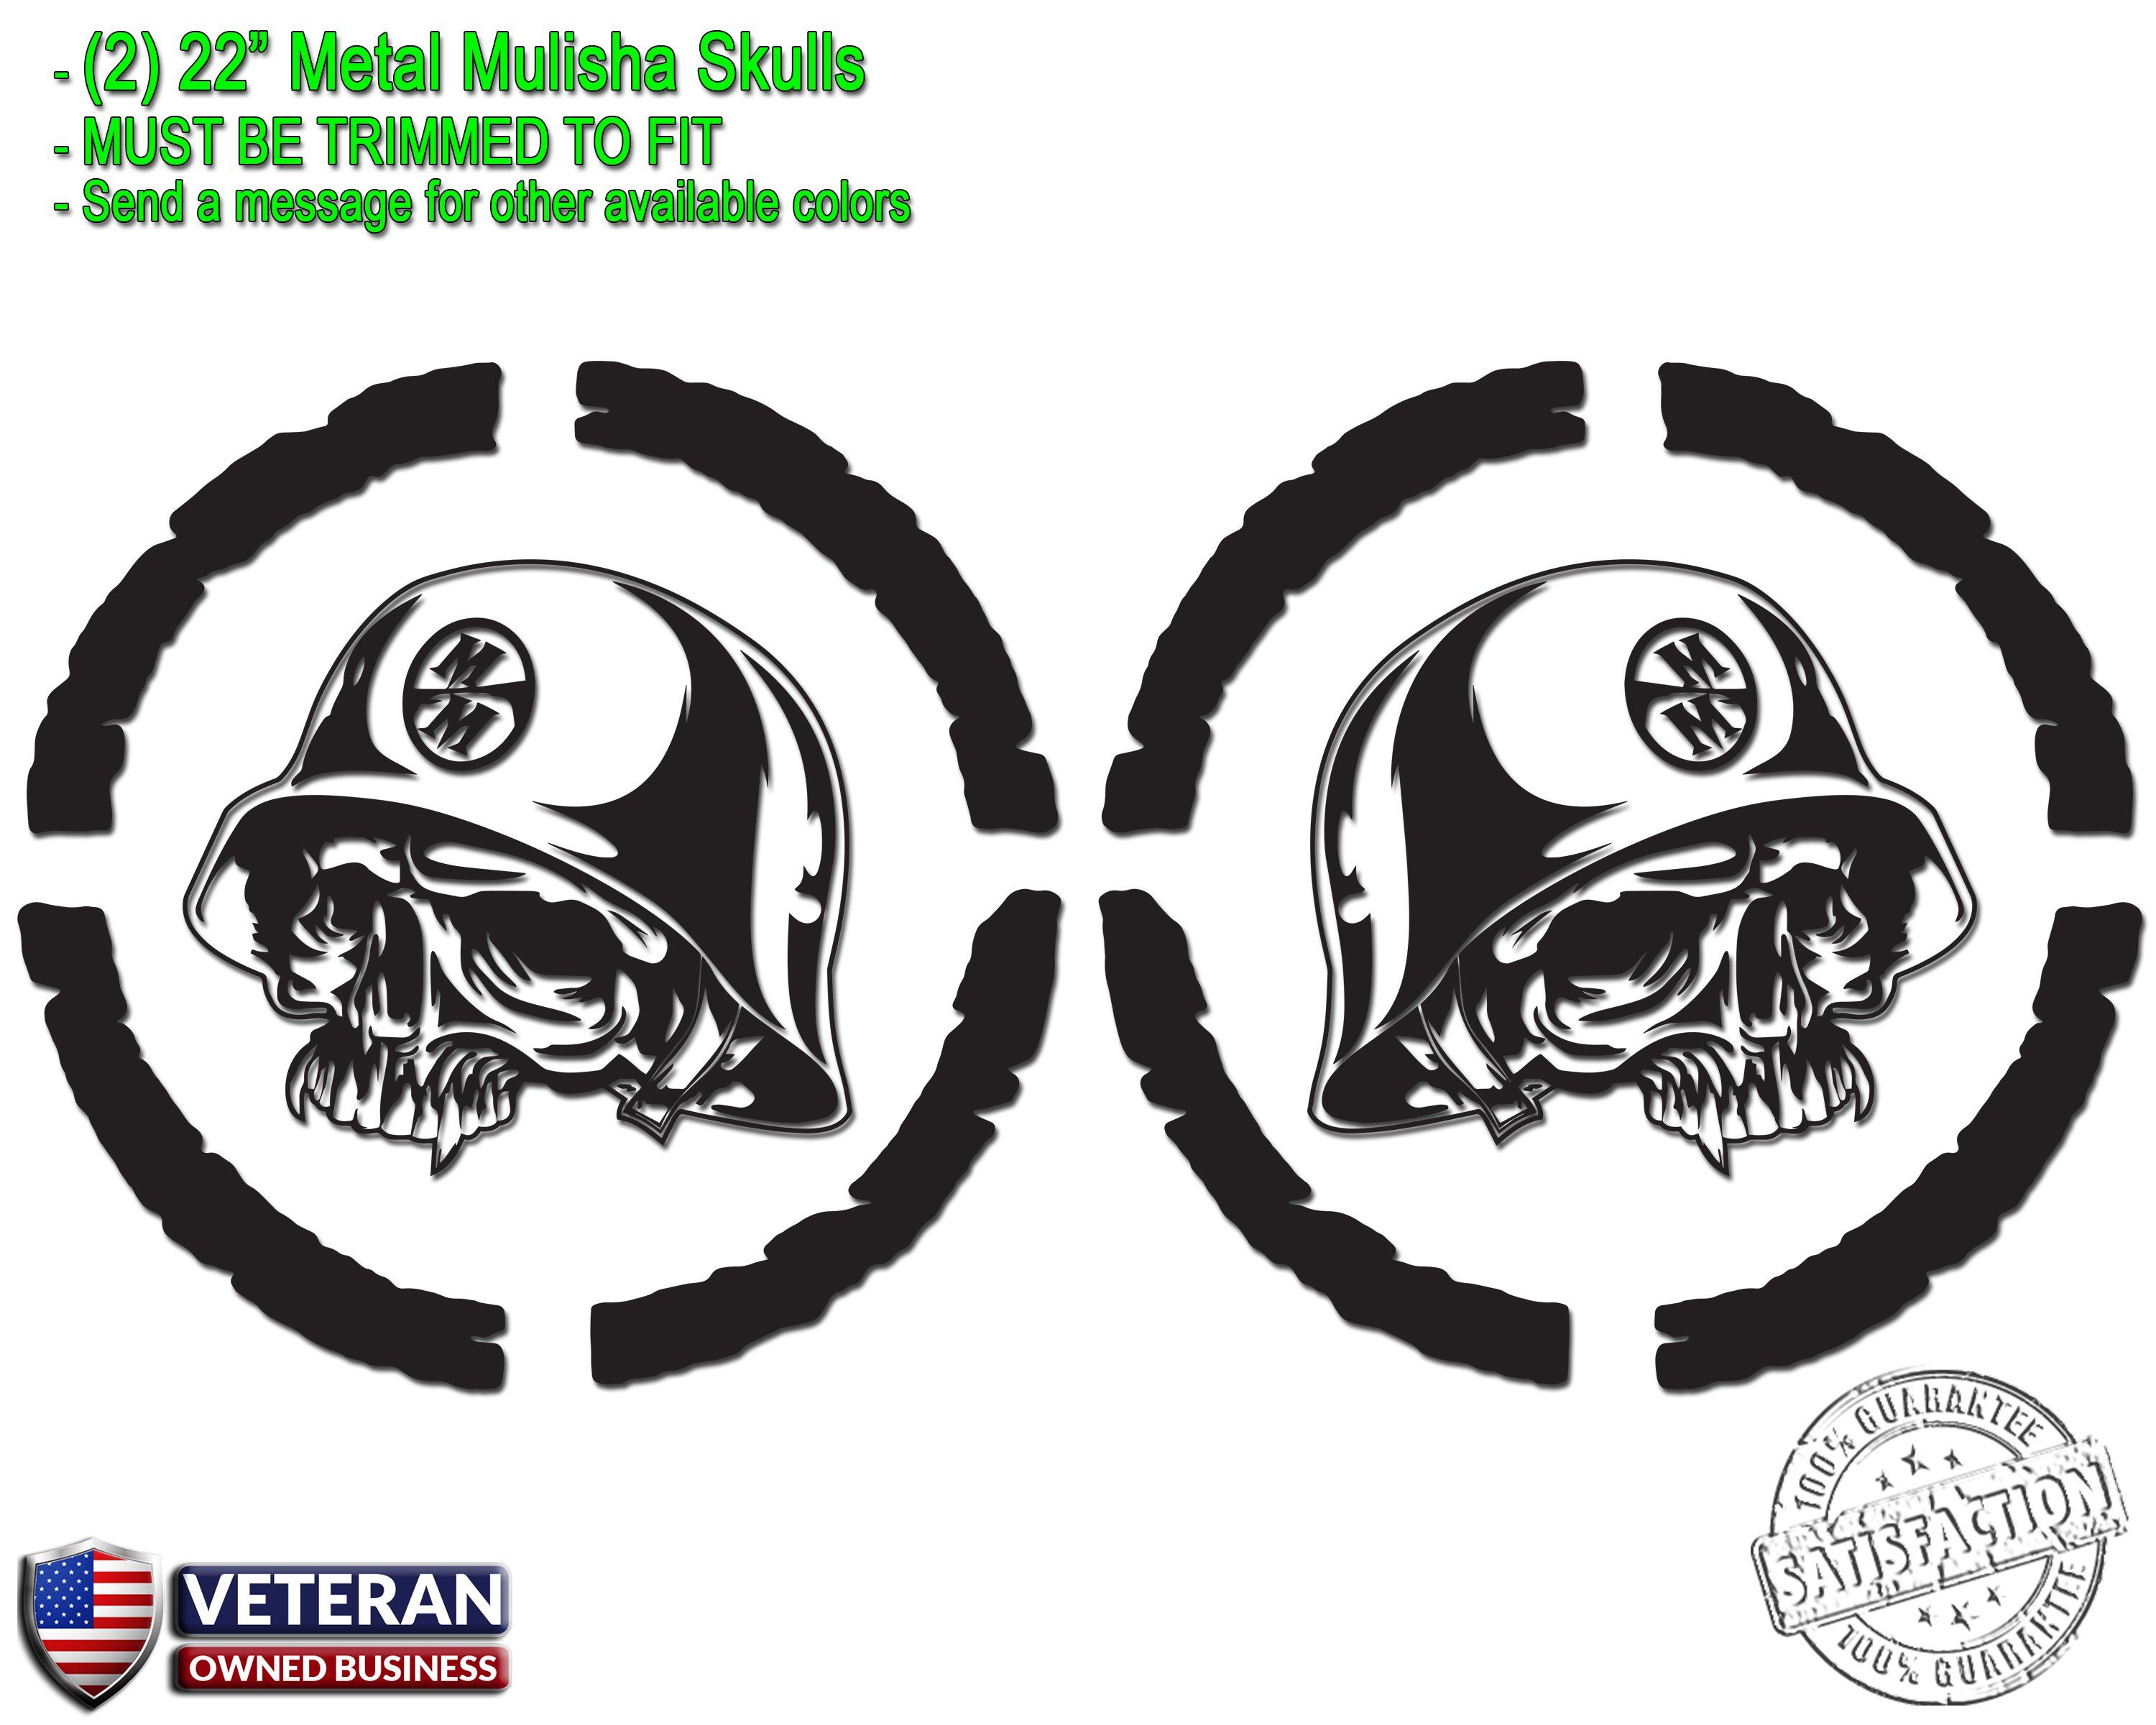 2) Metal Mulisha Skull Vinyl Decals 22